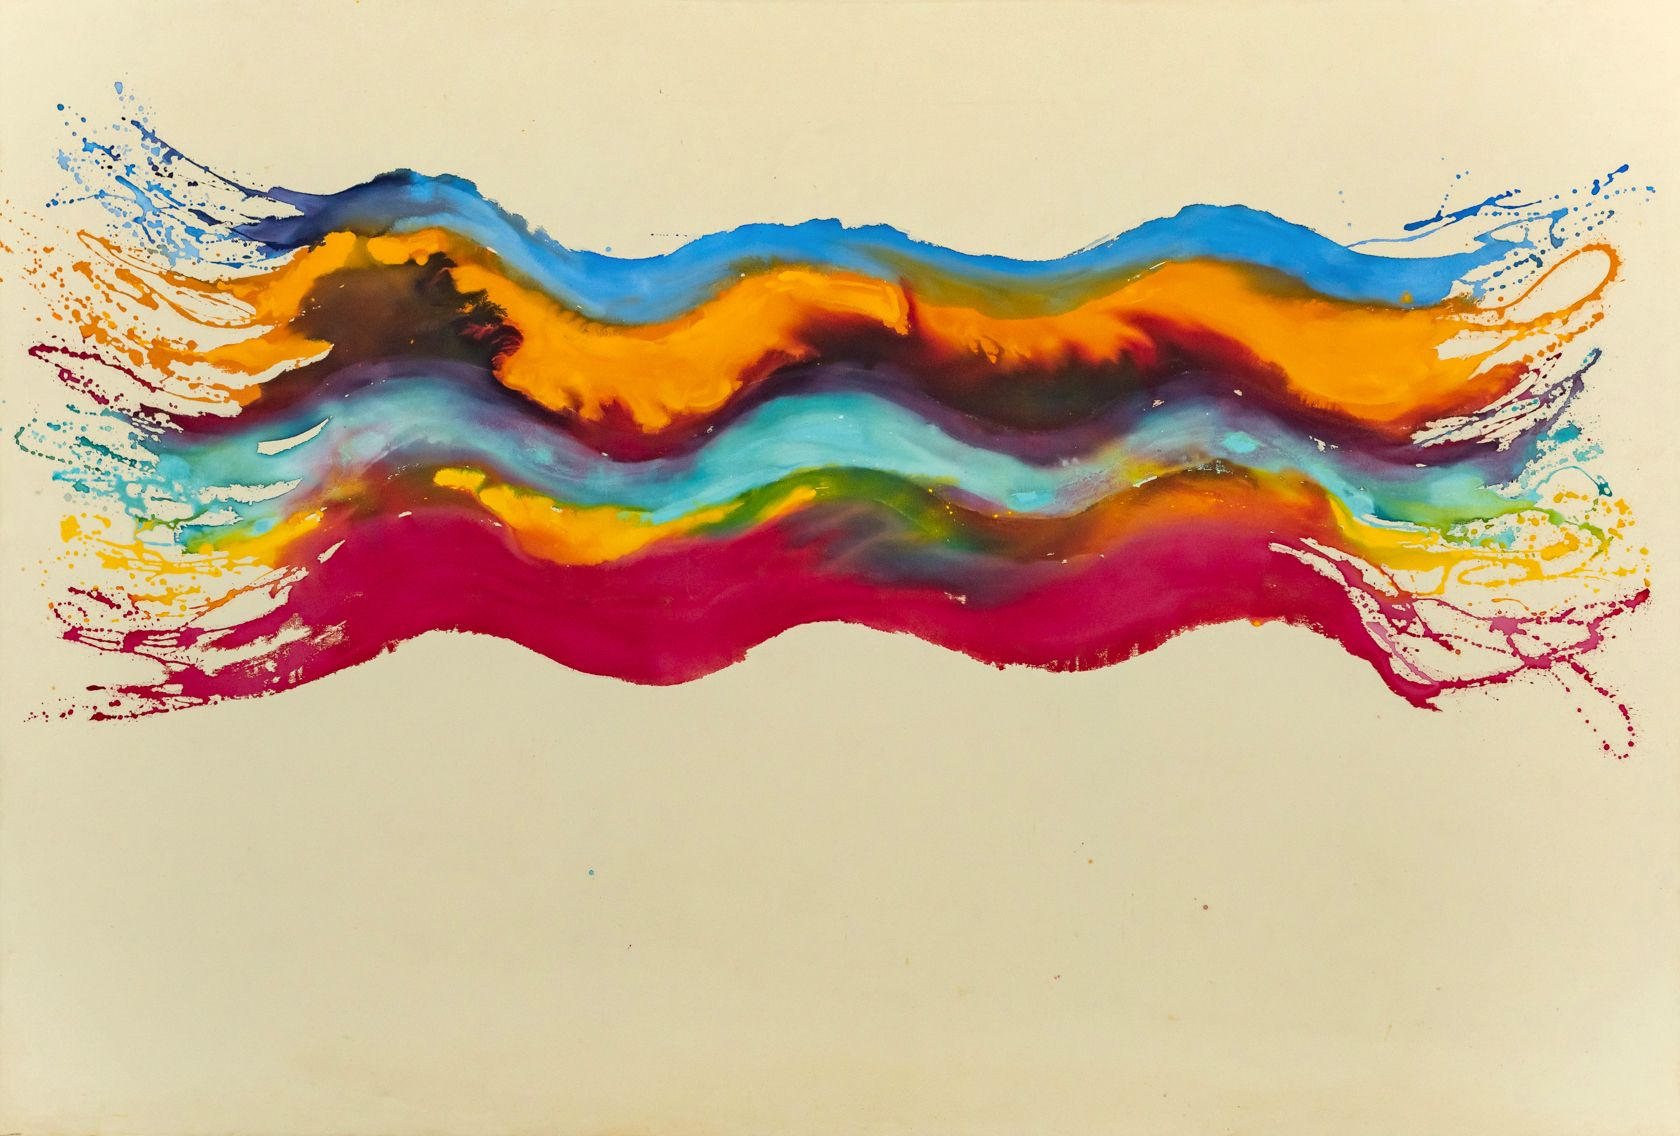 Candy, 1969, 82 X 121 inches